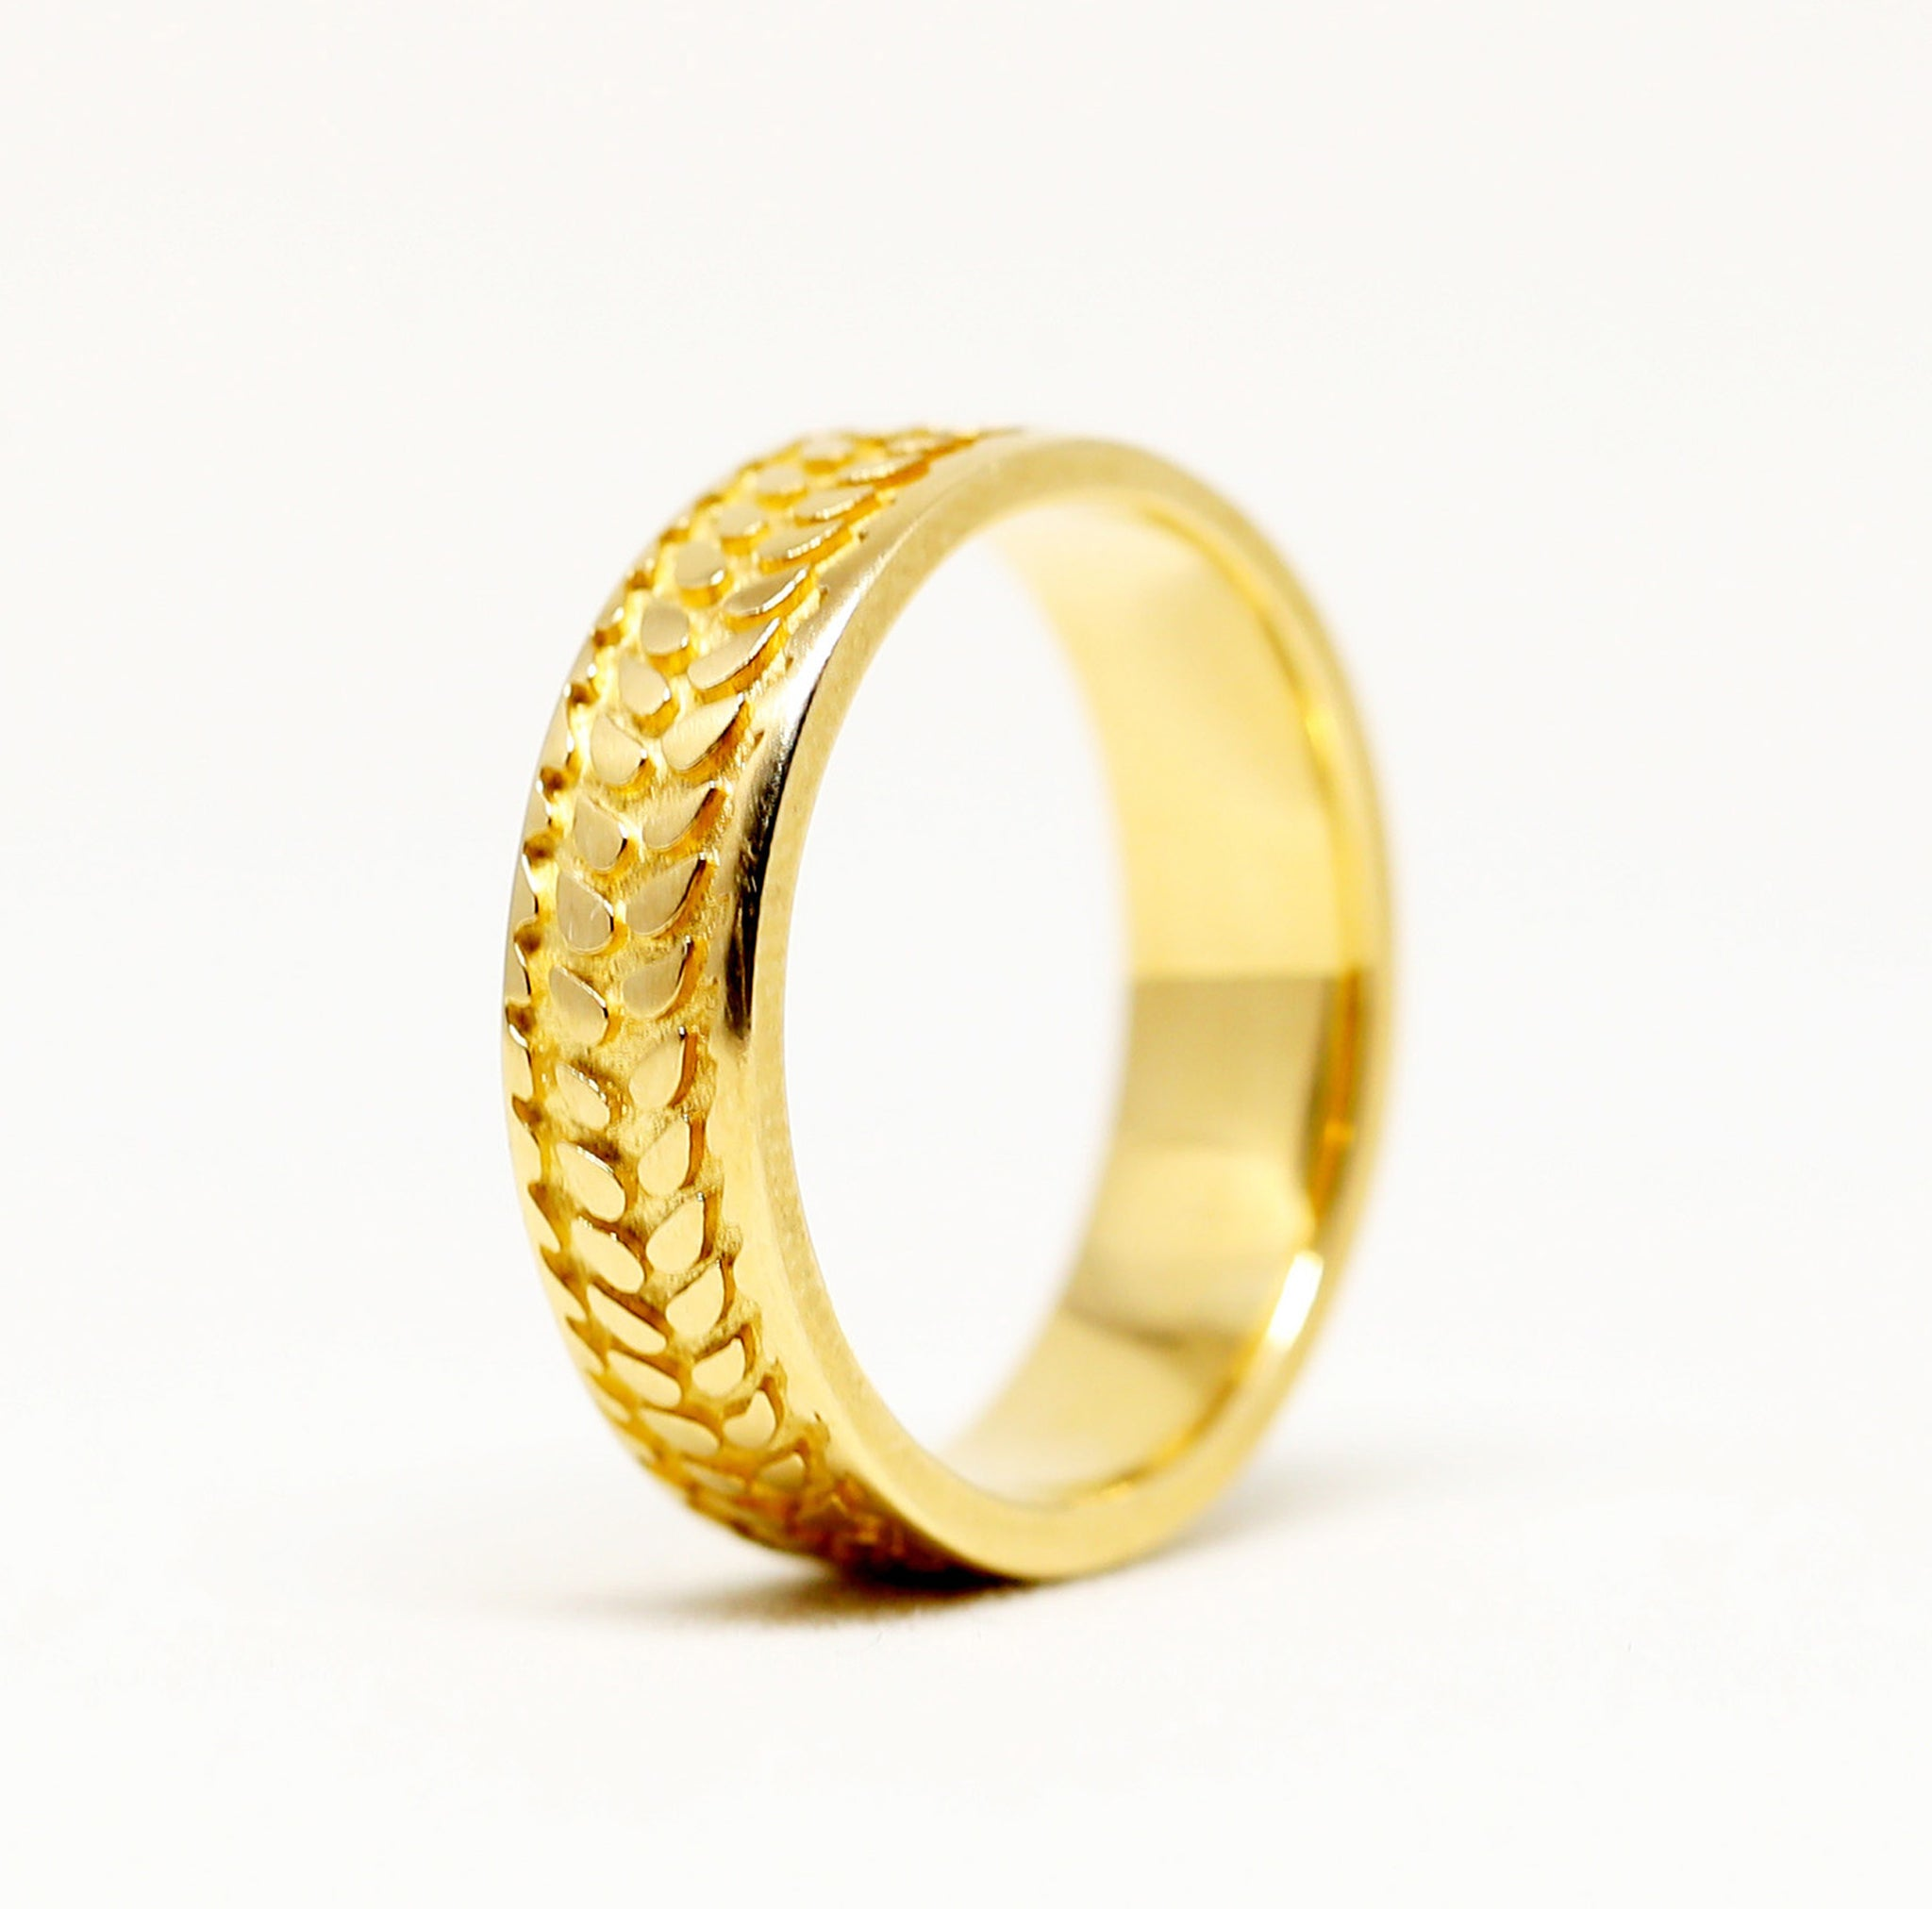 Barley Ring in Narrow 14k Yellow or White Gold